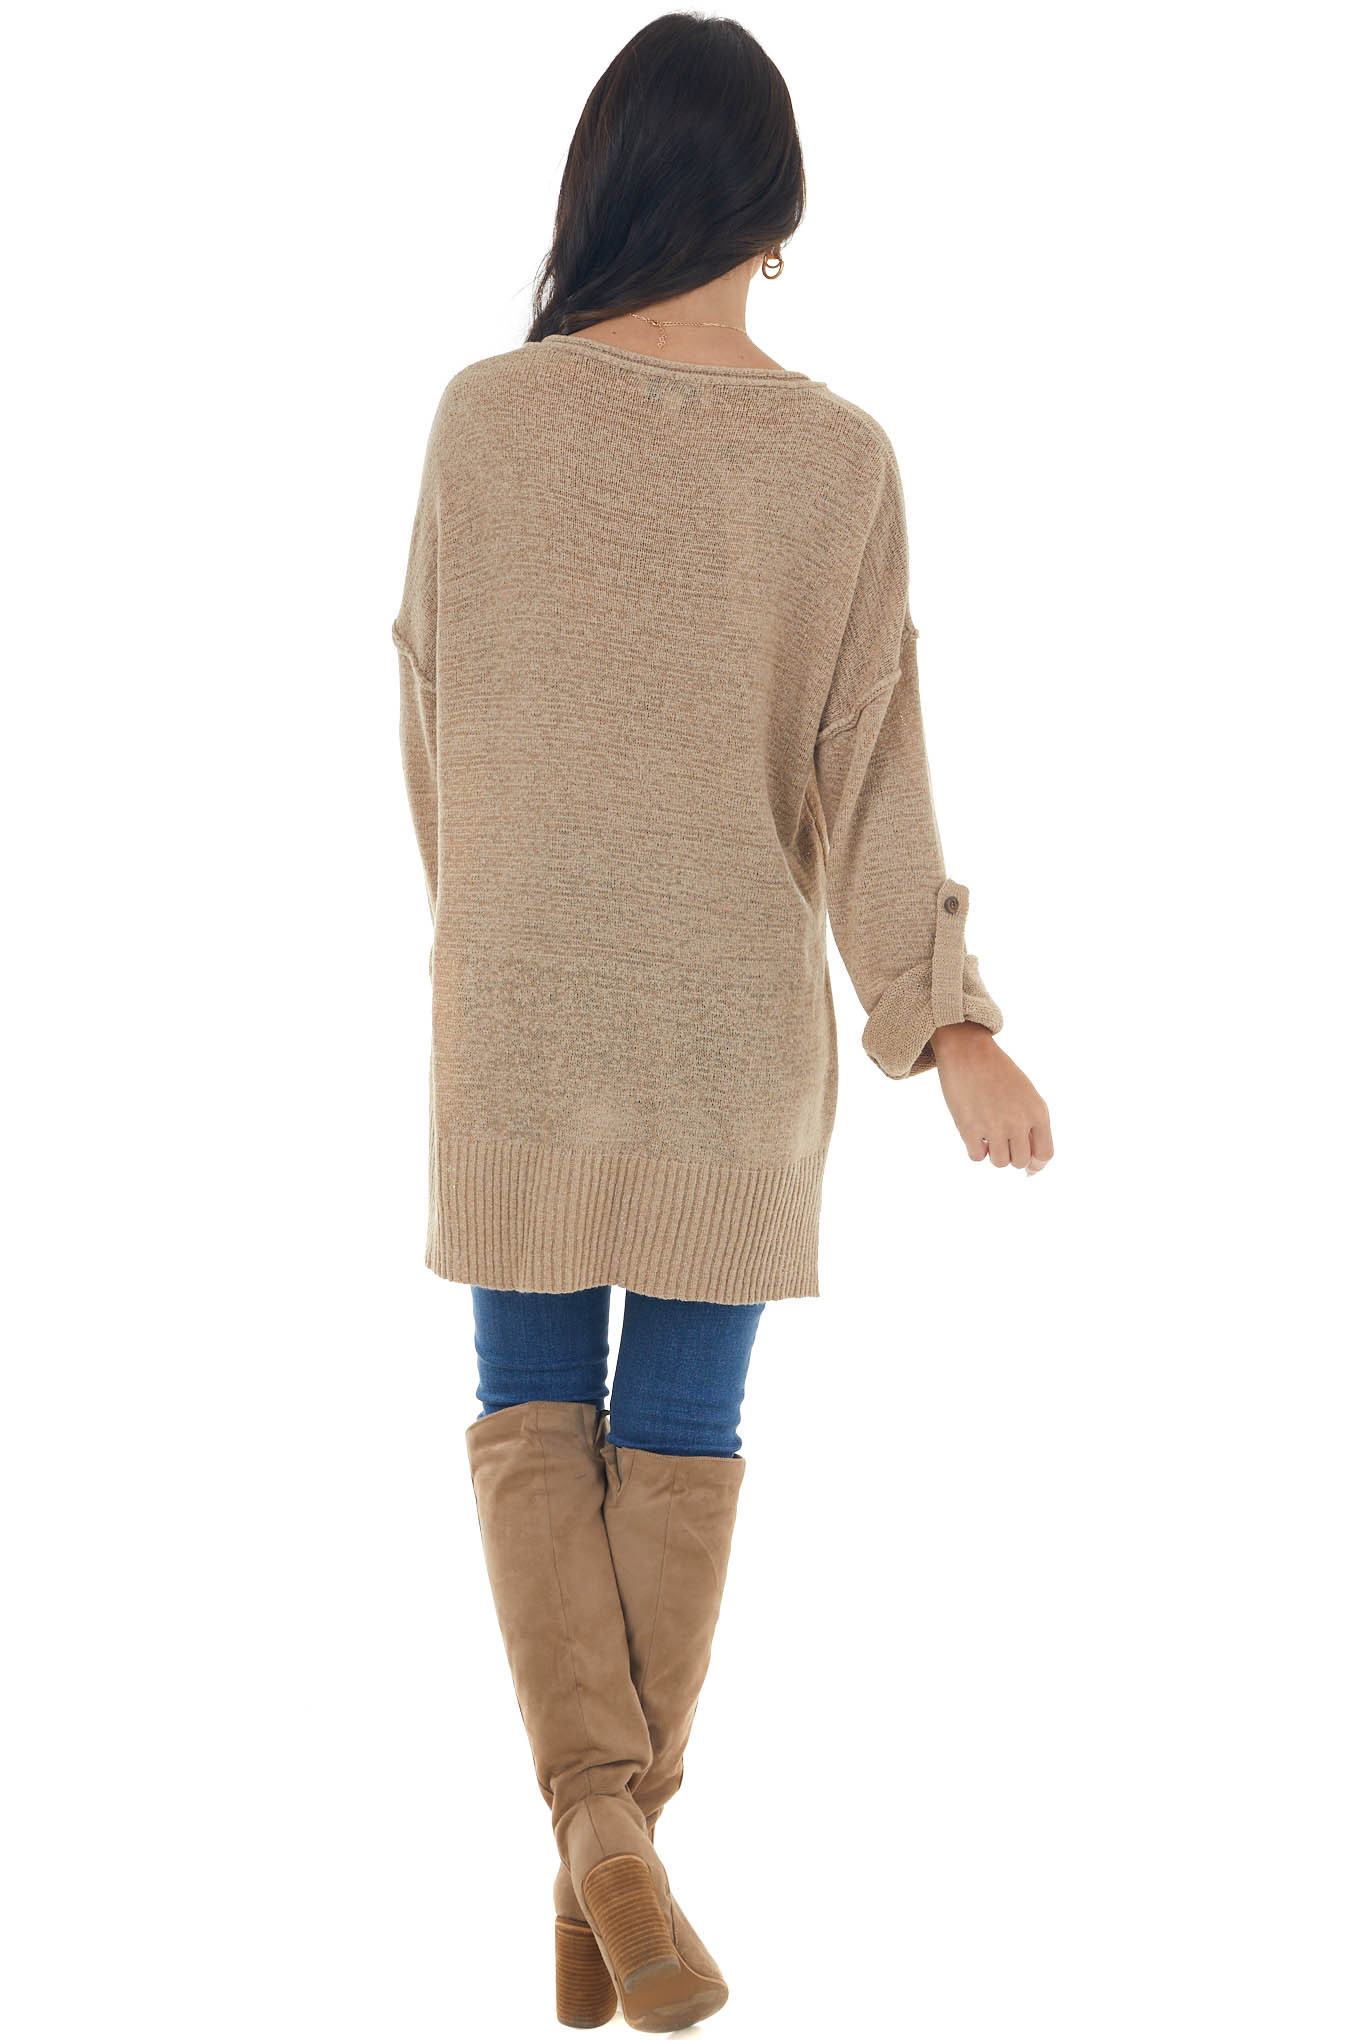 Latte Button Up Rolled Cuff Loose Knit Sweater